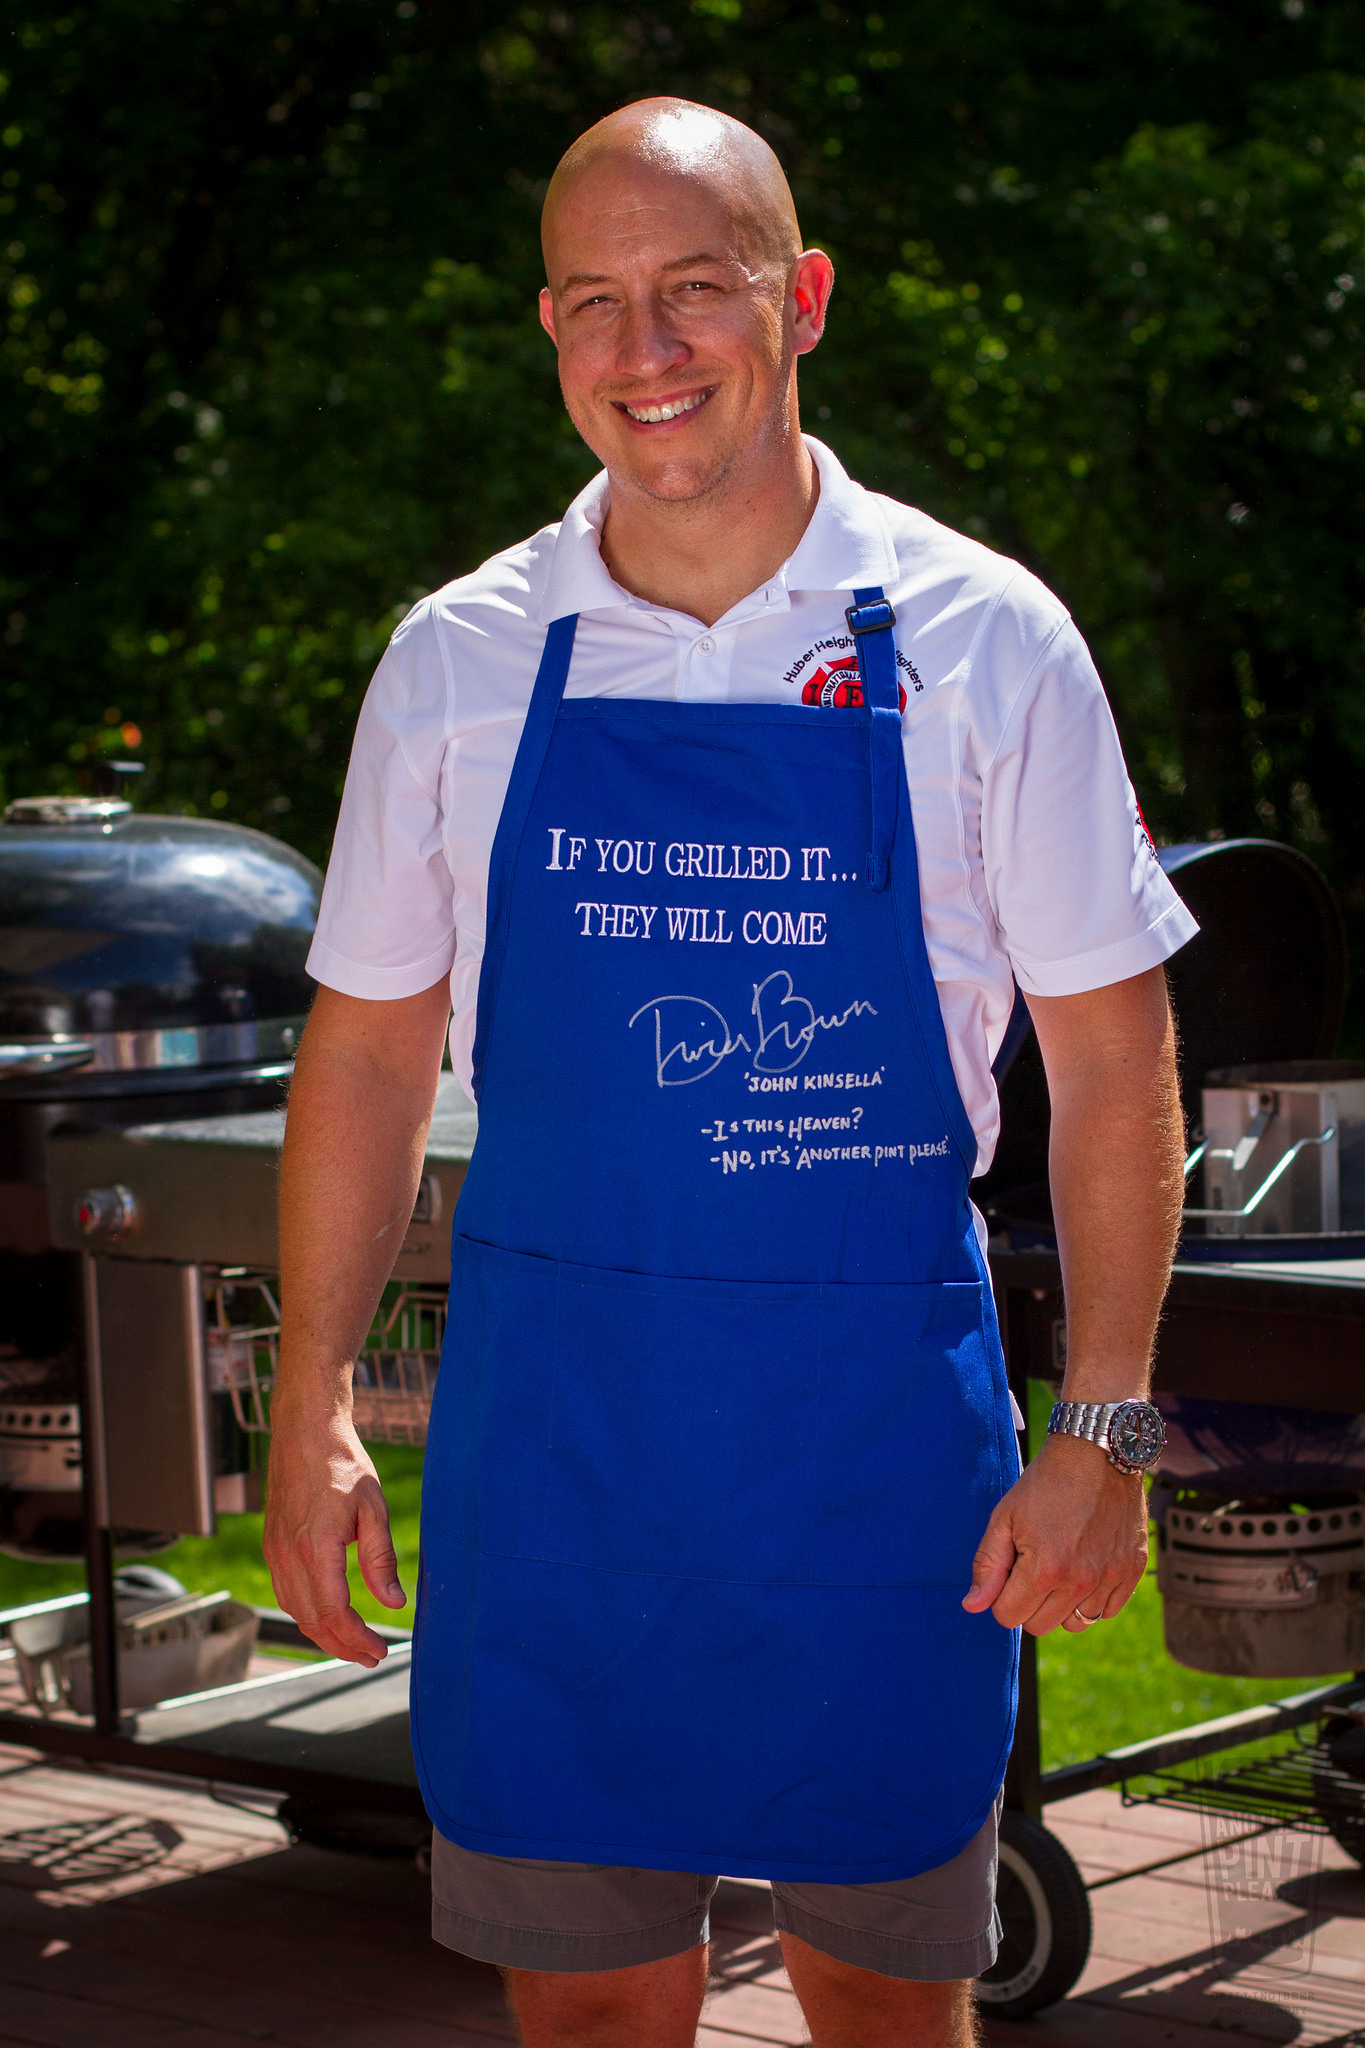 Mike and If You Build It apron.jpghttps://www.flickr.com/photos/anotherpintplease/26877208994